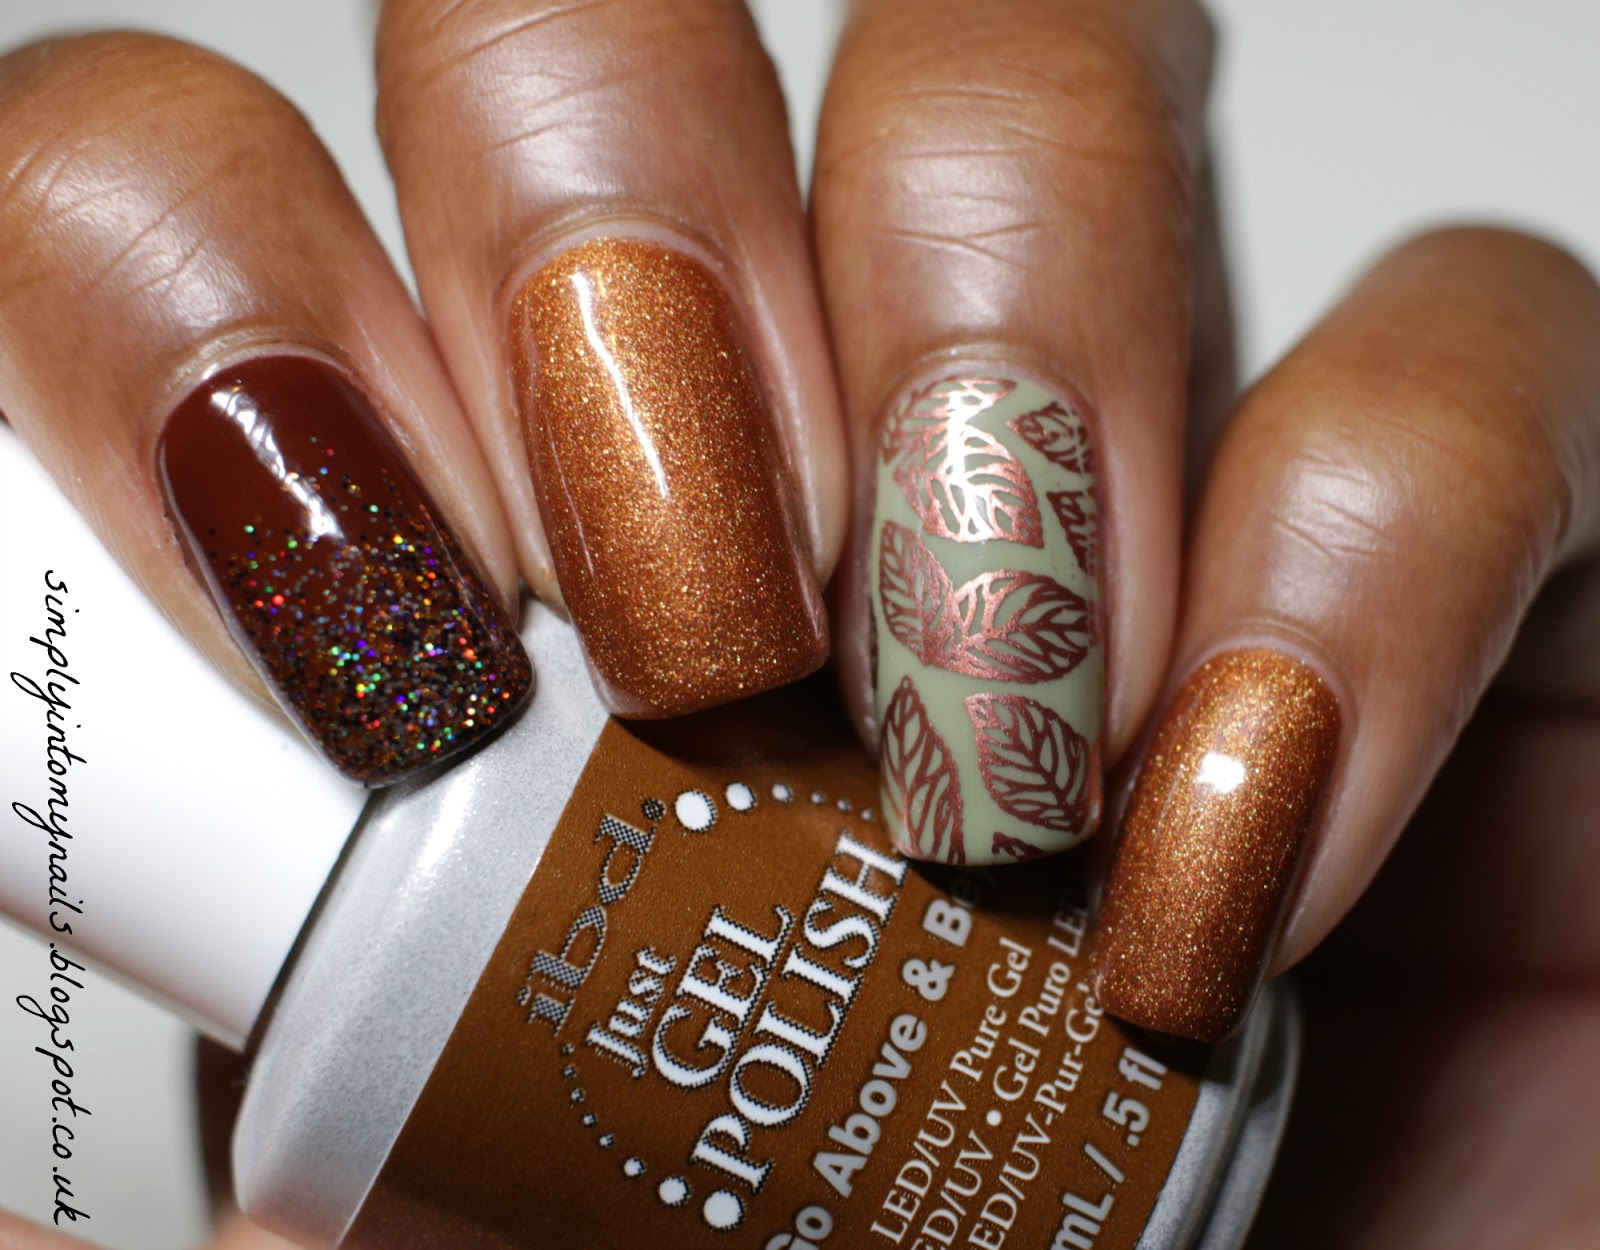 Shades Of Autumn/Fall | Simply Into My NAILS